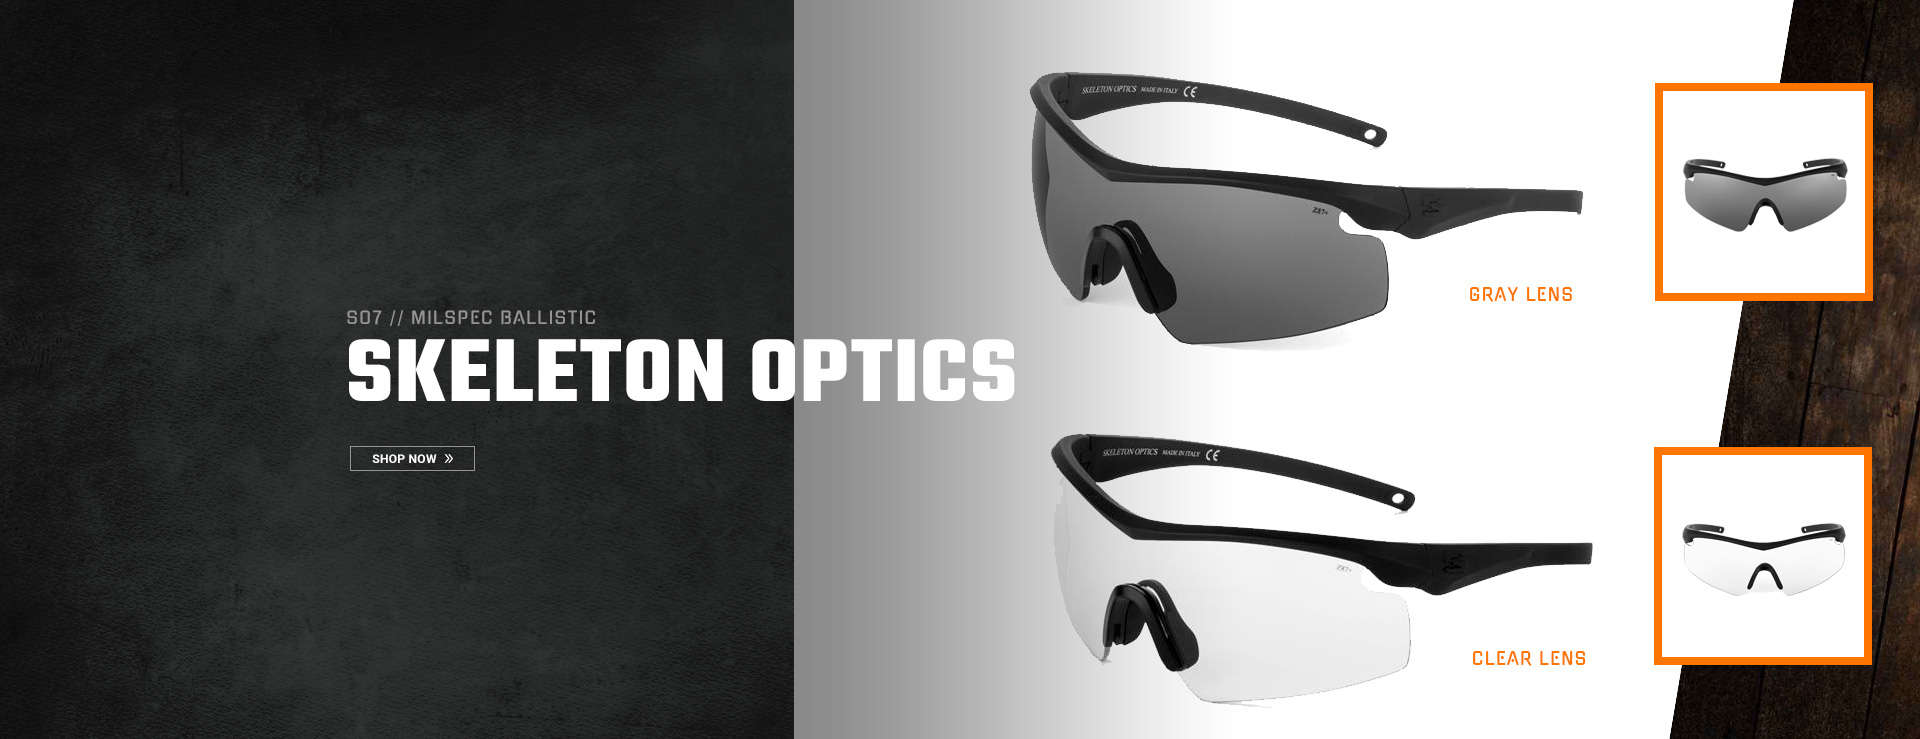 MILSPEC Ballistic Skeleton Optics